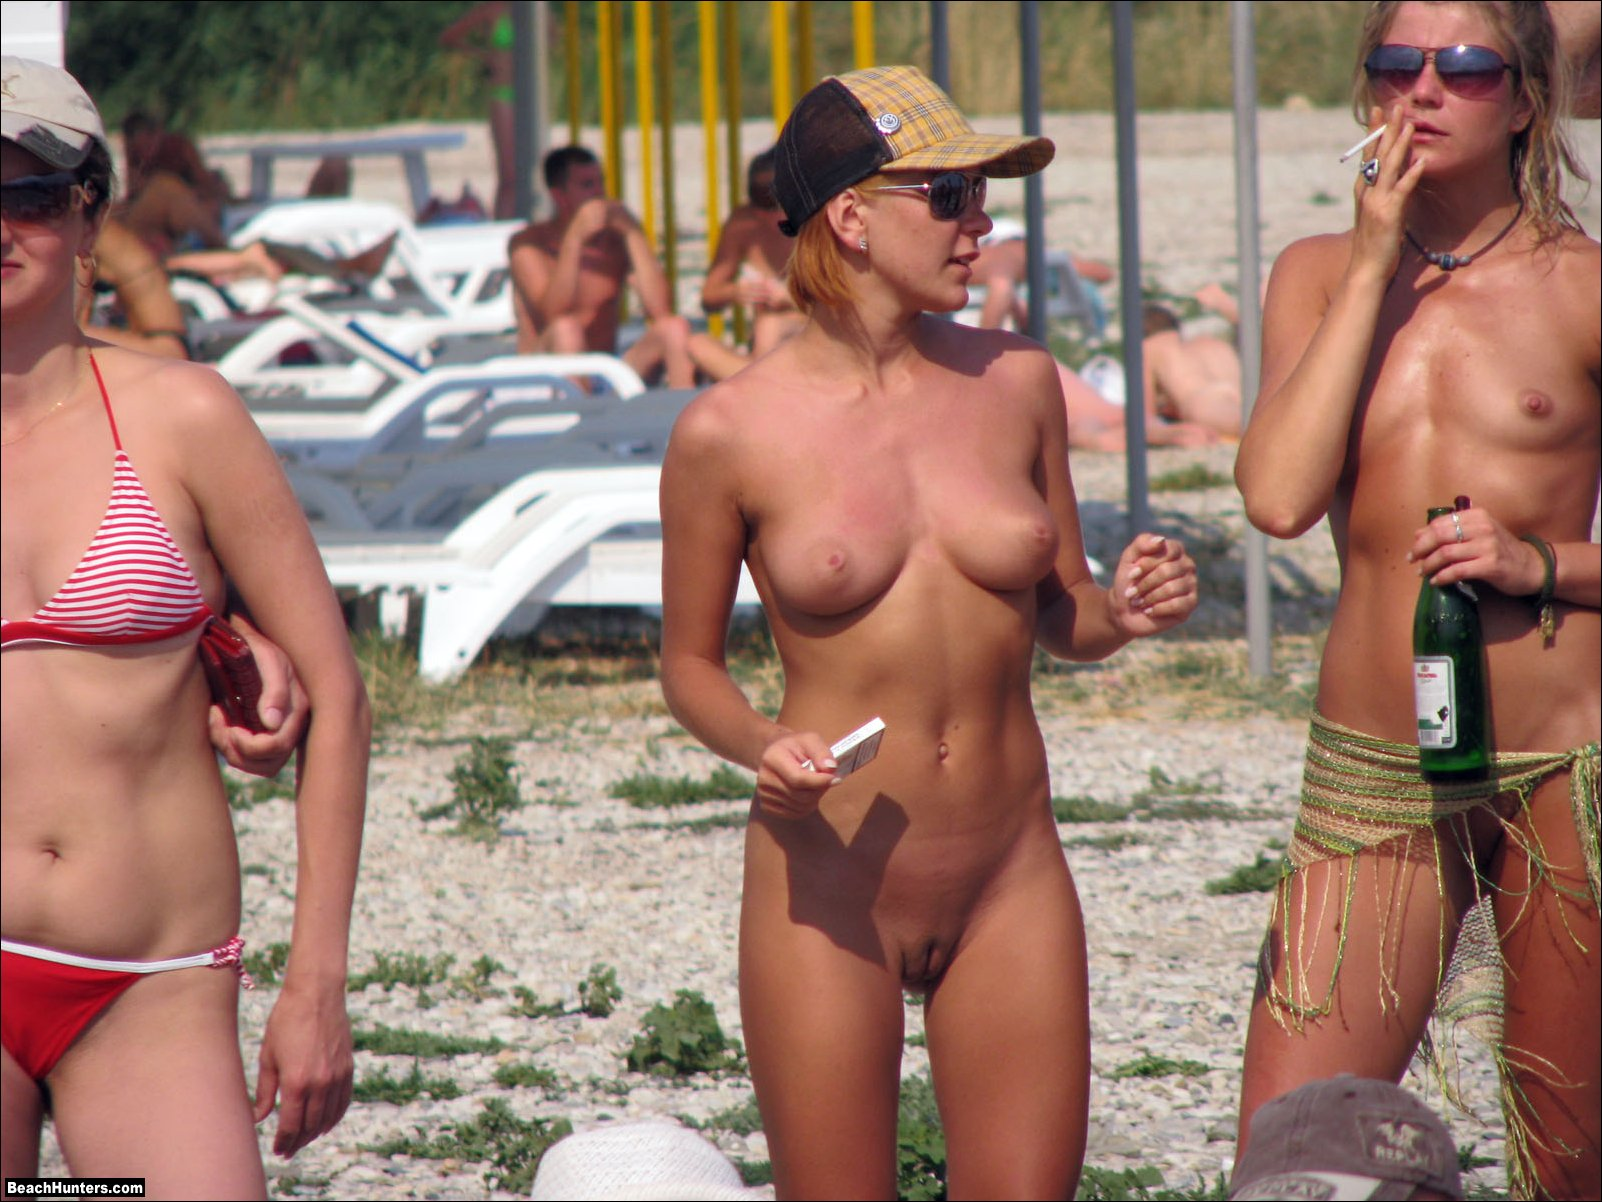 Hot jersey girls nude